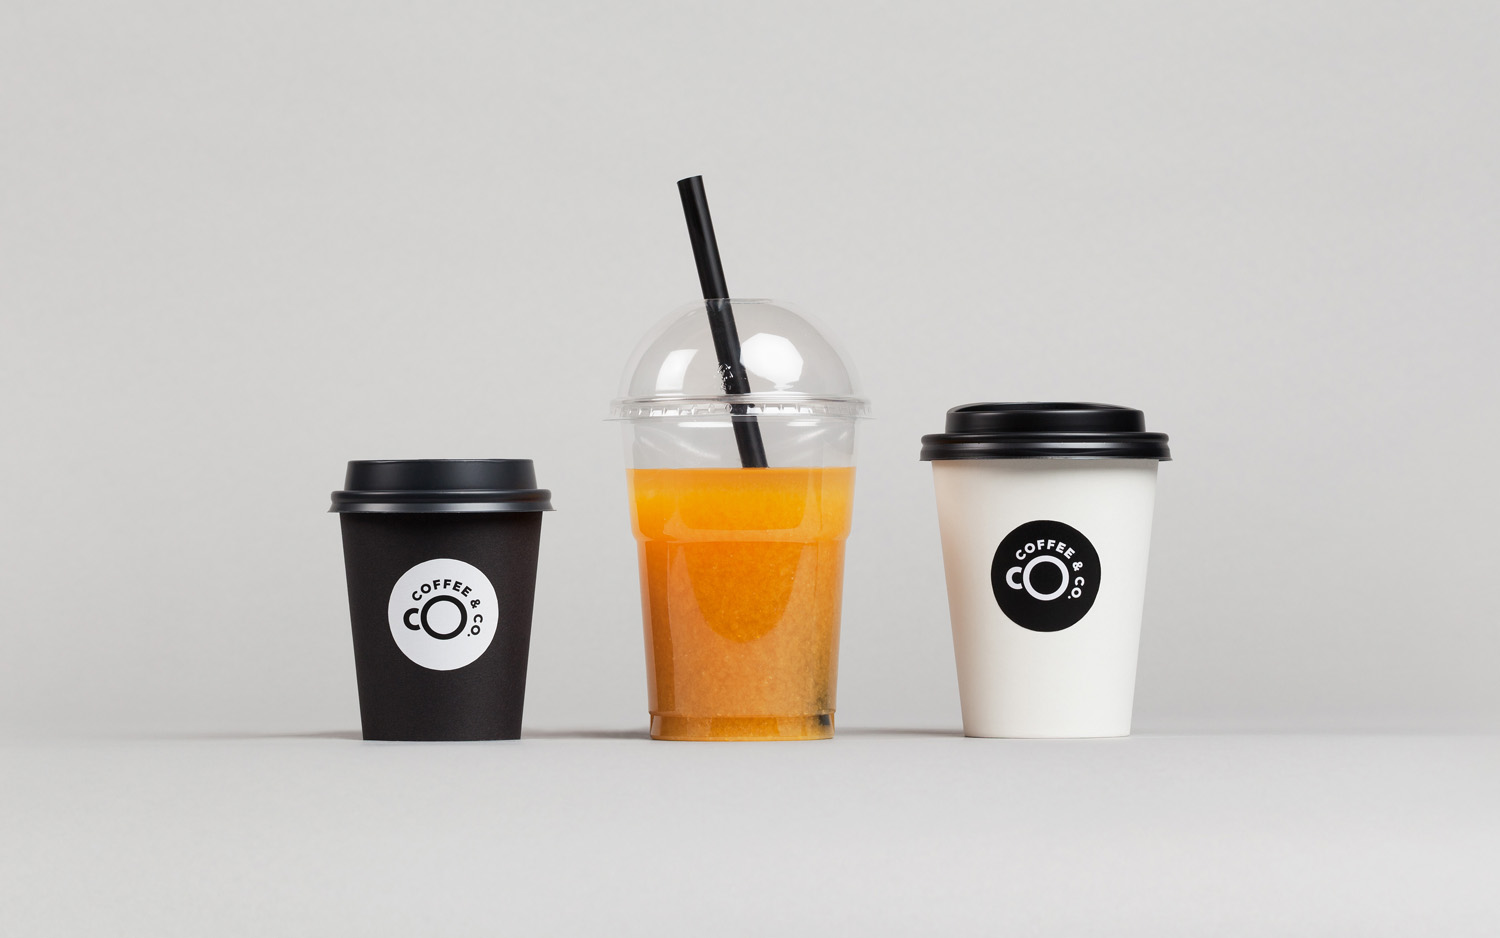 Brand identity and branded coffee cups by Bond for cruise ship cafeteria concept Coffee & Co.